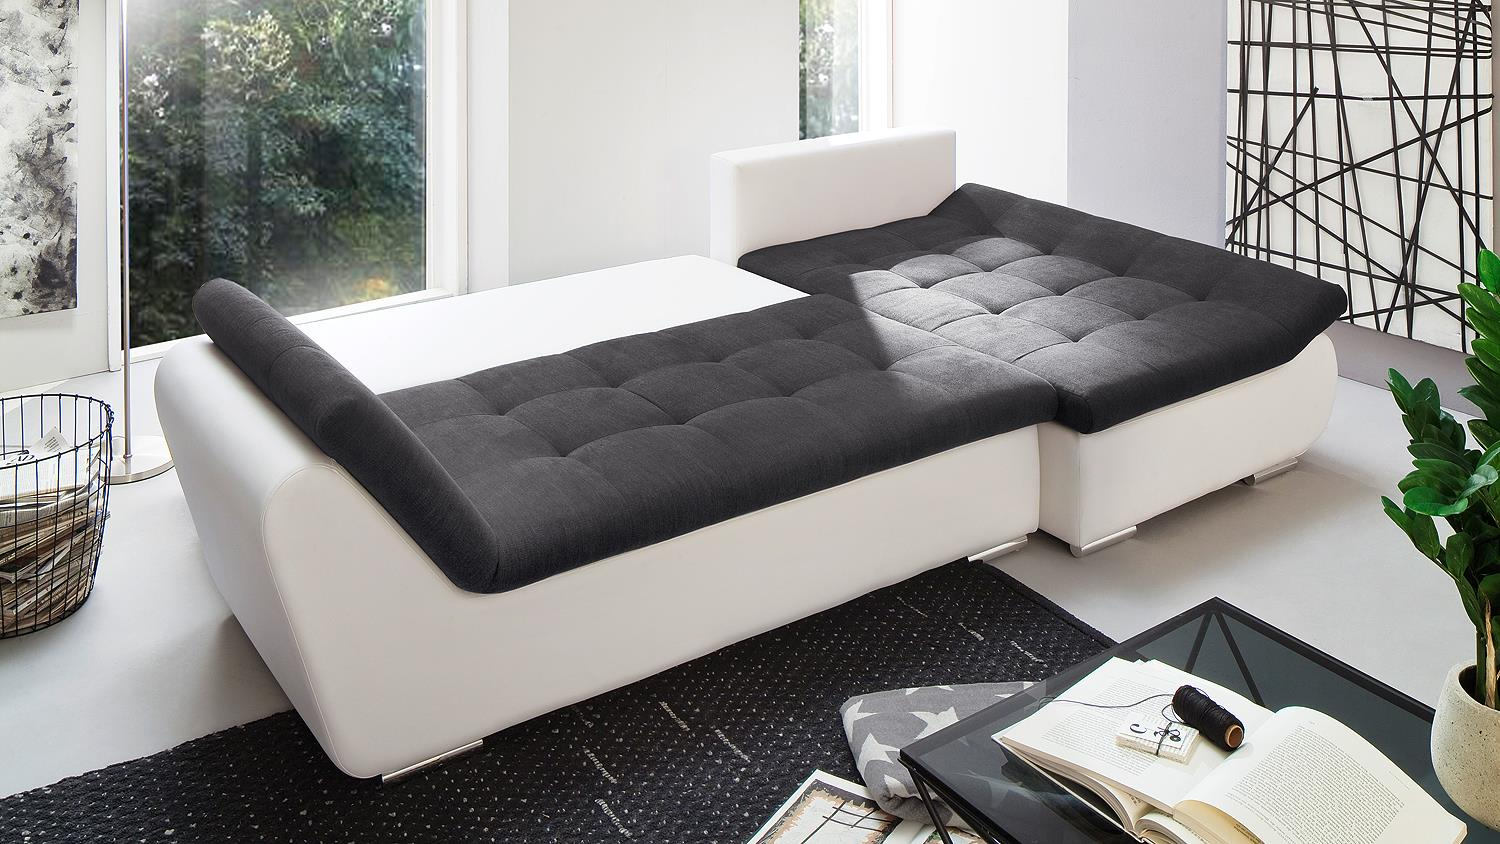 Ecksofa pisa wei anthrazit mit bettfunktion und for Ecksofa 300 x 200